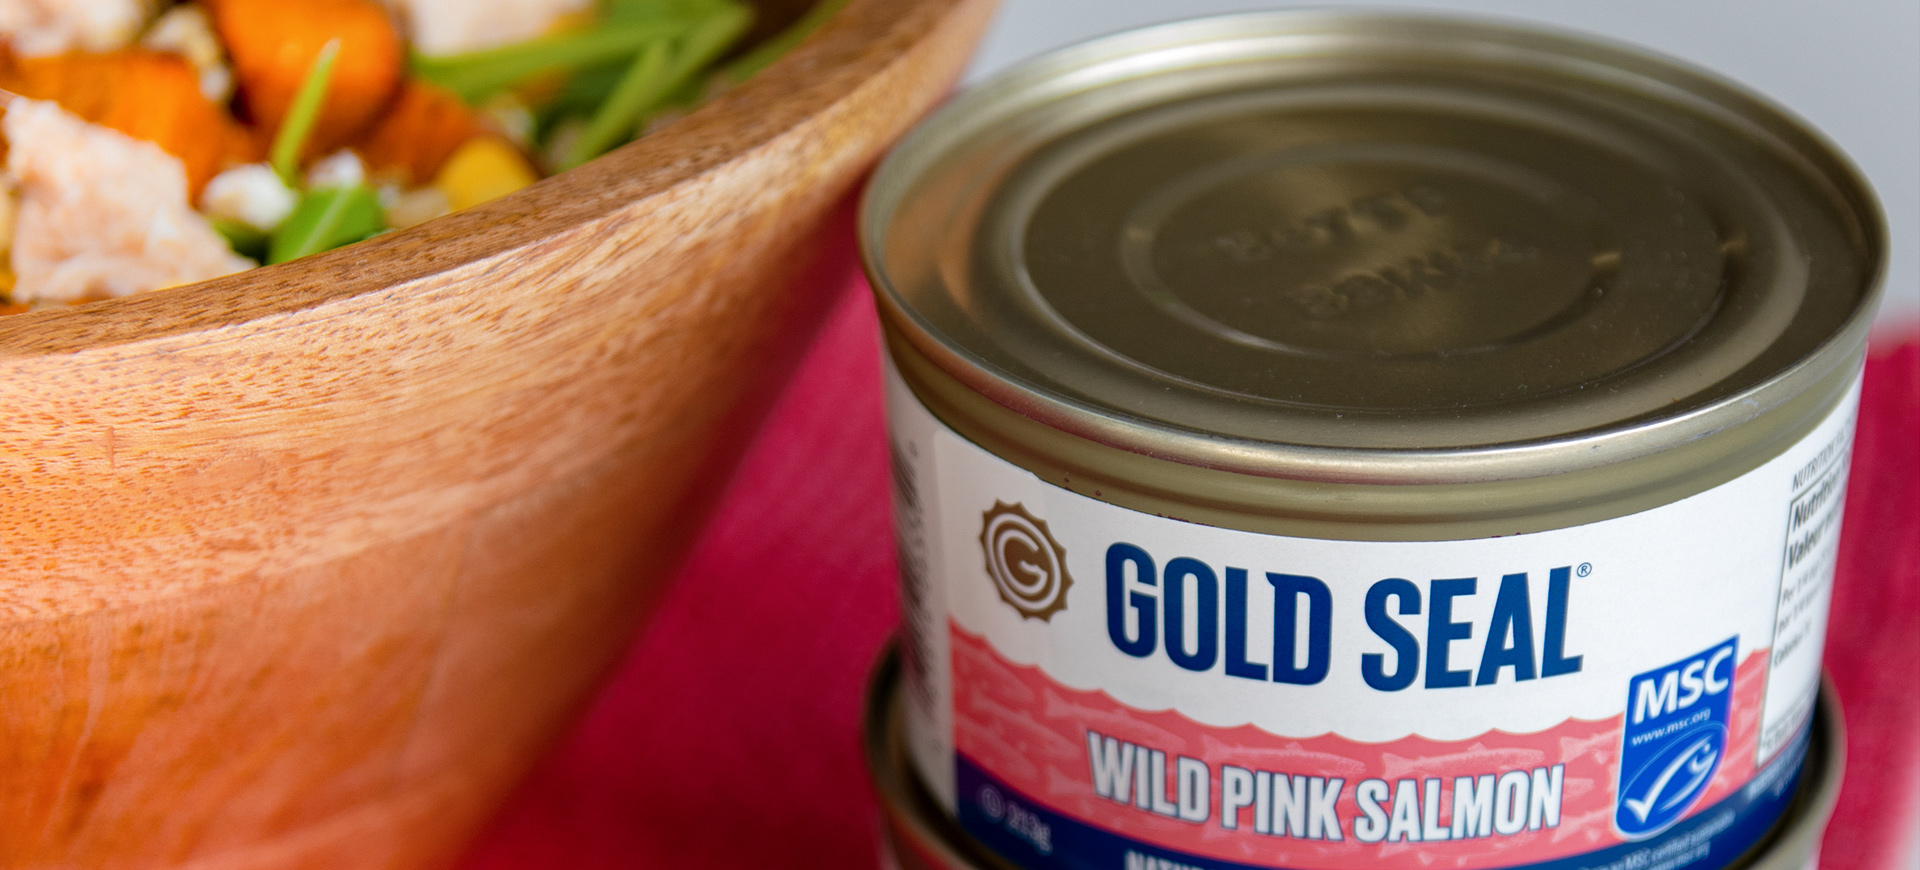 What Do You Really Know About Canned Salmon?